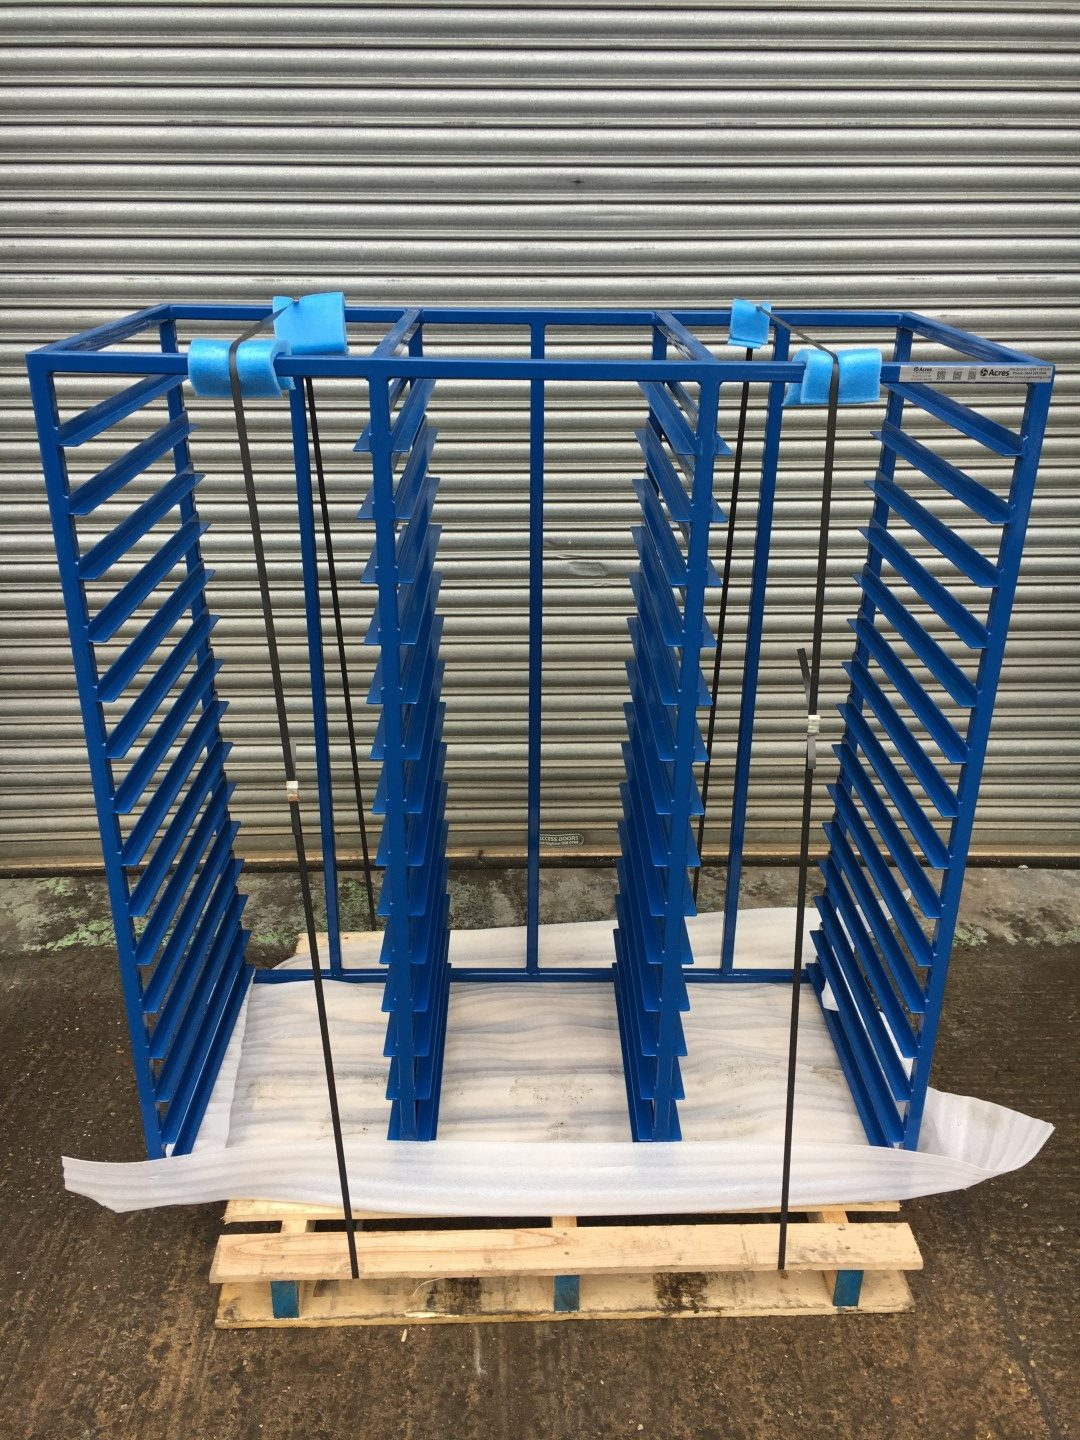 Triple Tray Rack for NPI Department